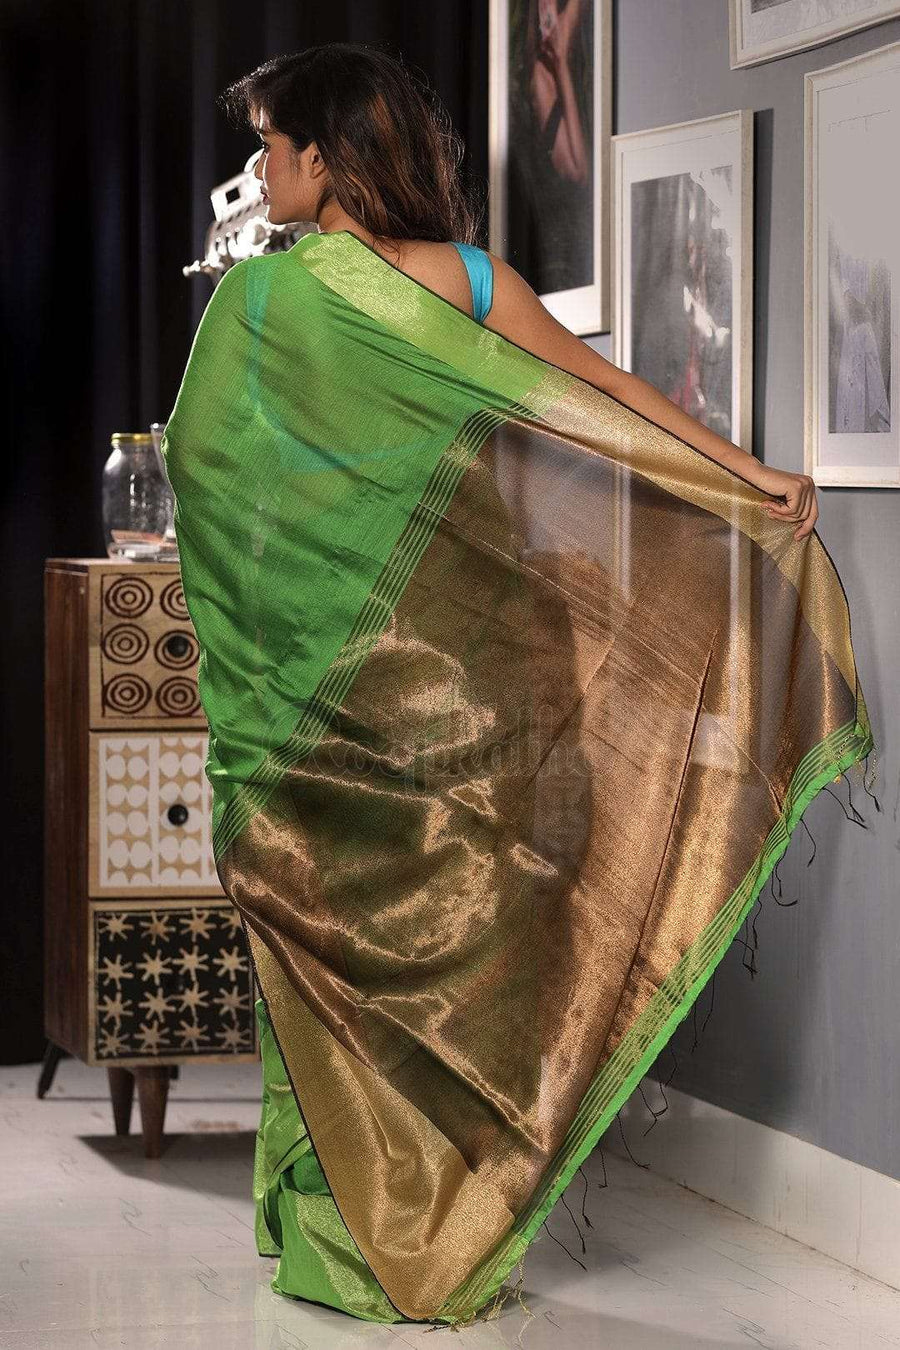 Pear Green Blended Cotton Saree With Metallic Border Akasha Roopkatha - A Story of Art